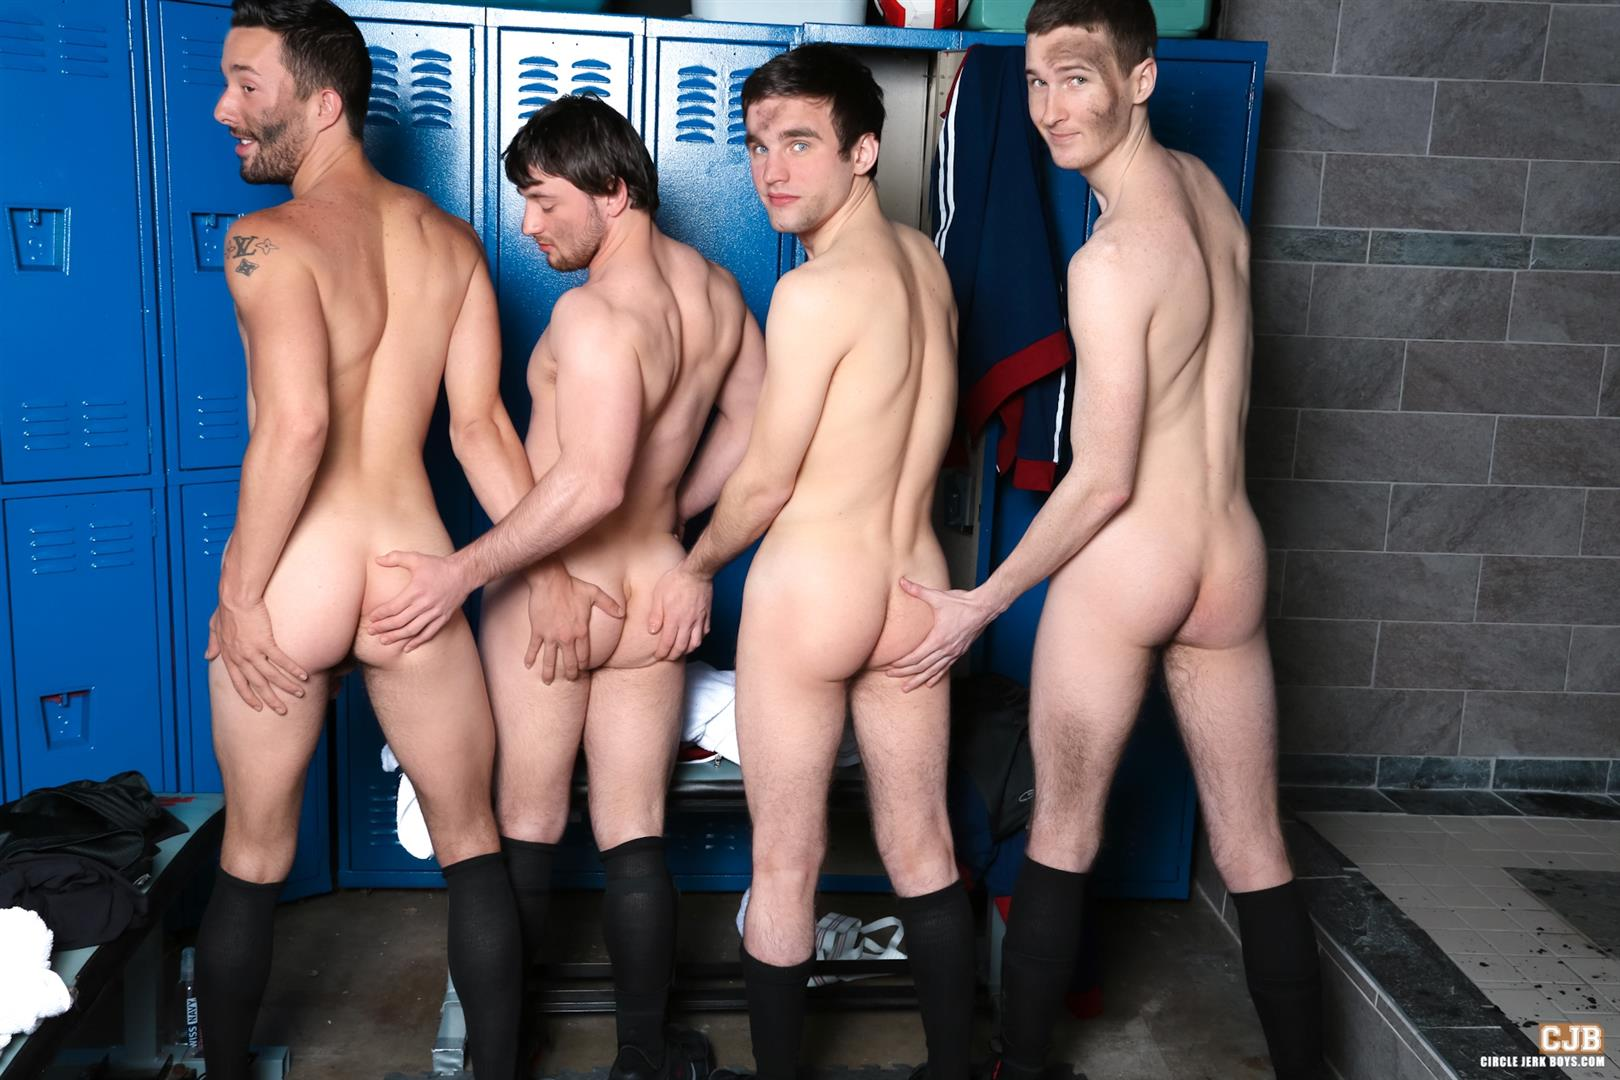 Circle Jerk Boys Andrew Collins and Isaac Hardy and Josh Pierce and Scott Harbor Soccer Guys Sucking Cock Amateur Gay Porn 12 After the Game, Soccer Plays Sucking Cock In The Locker Room